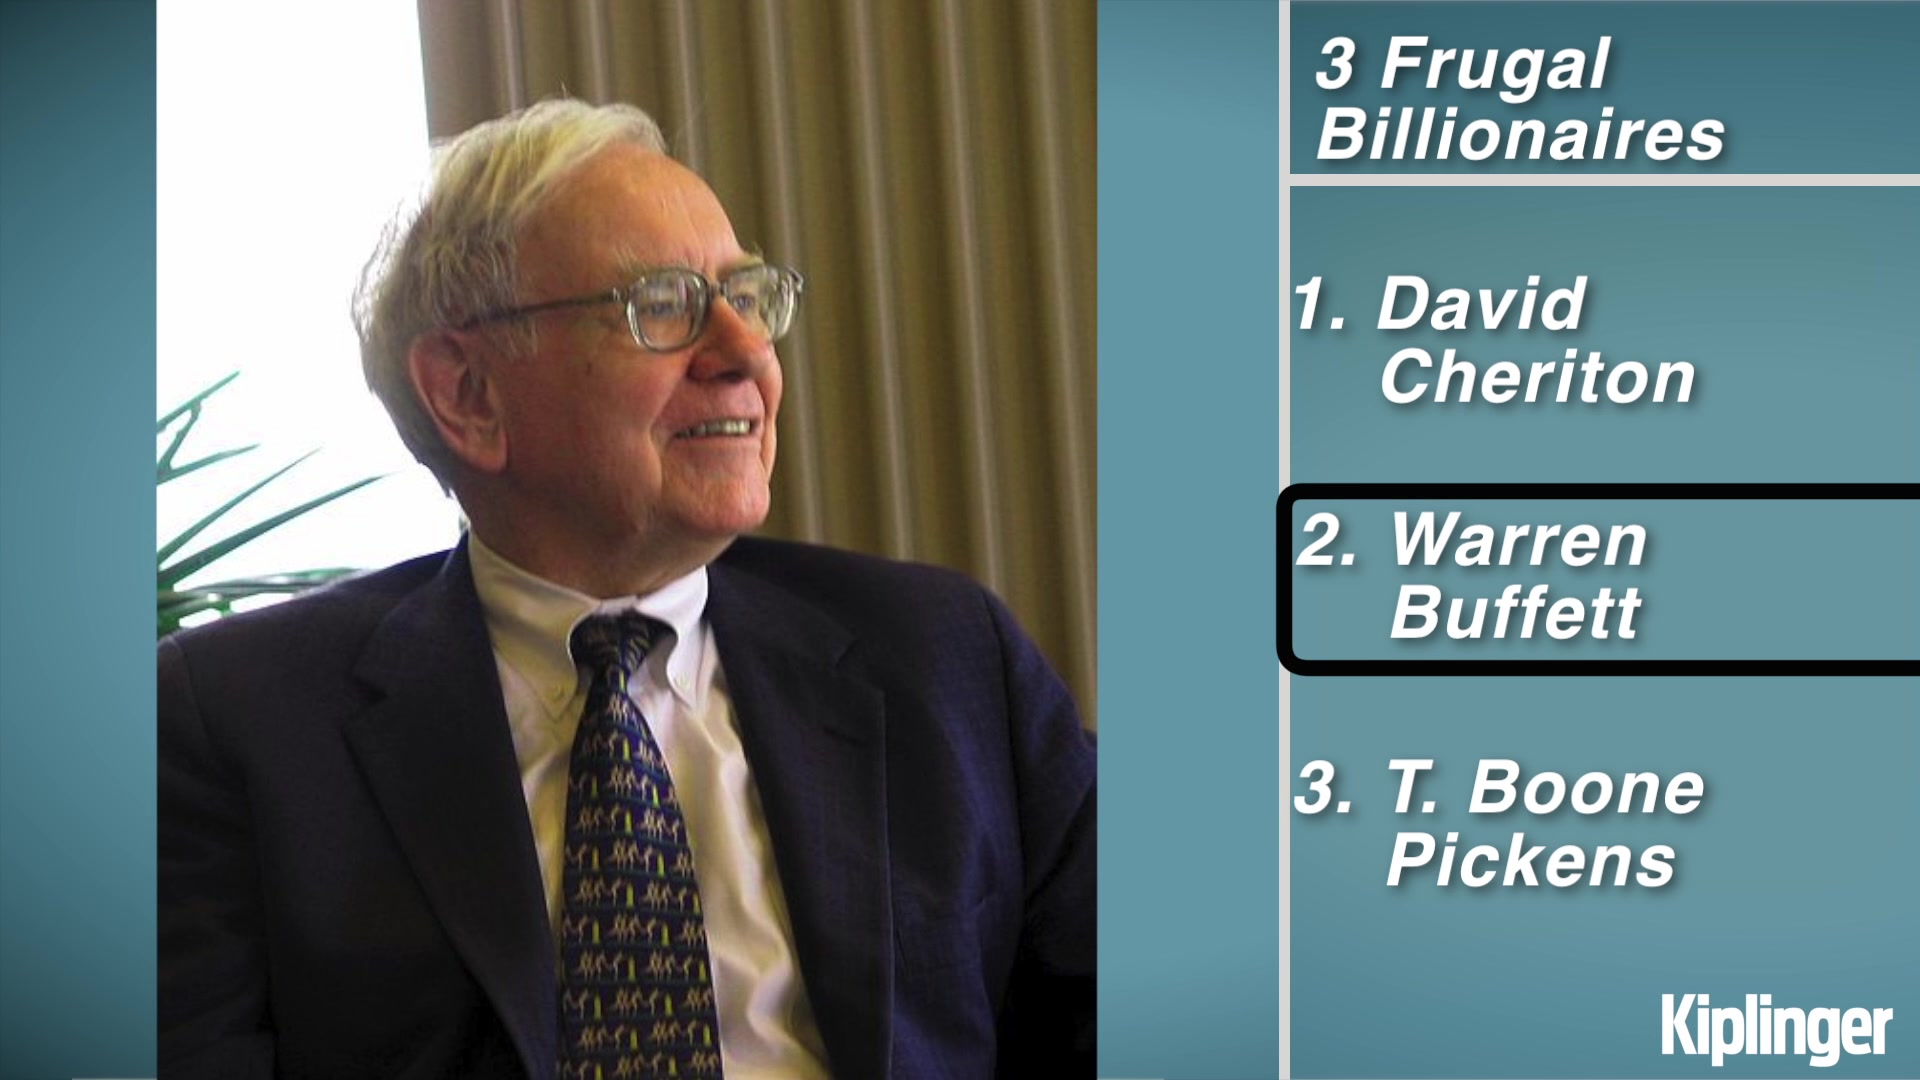 Frugal Habits of Three Billionaires